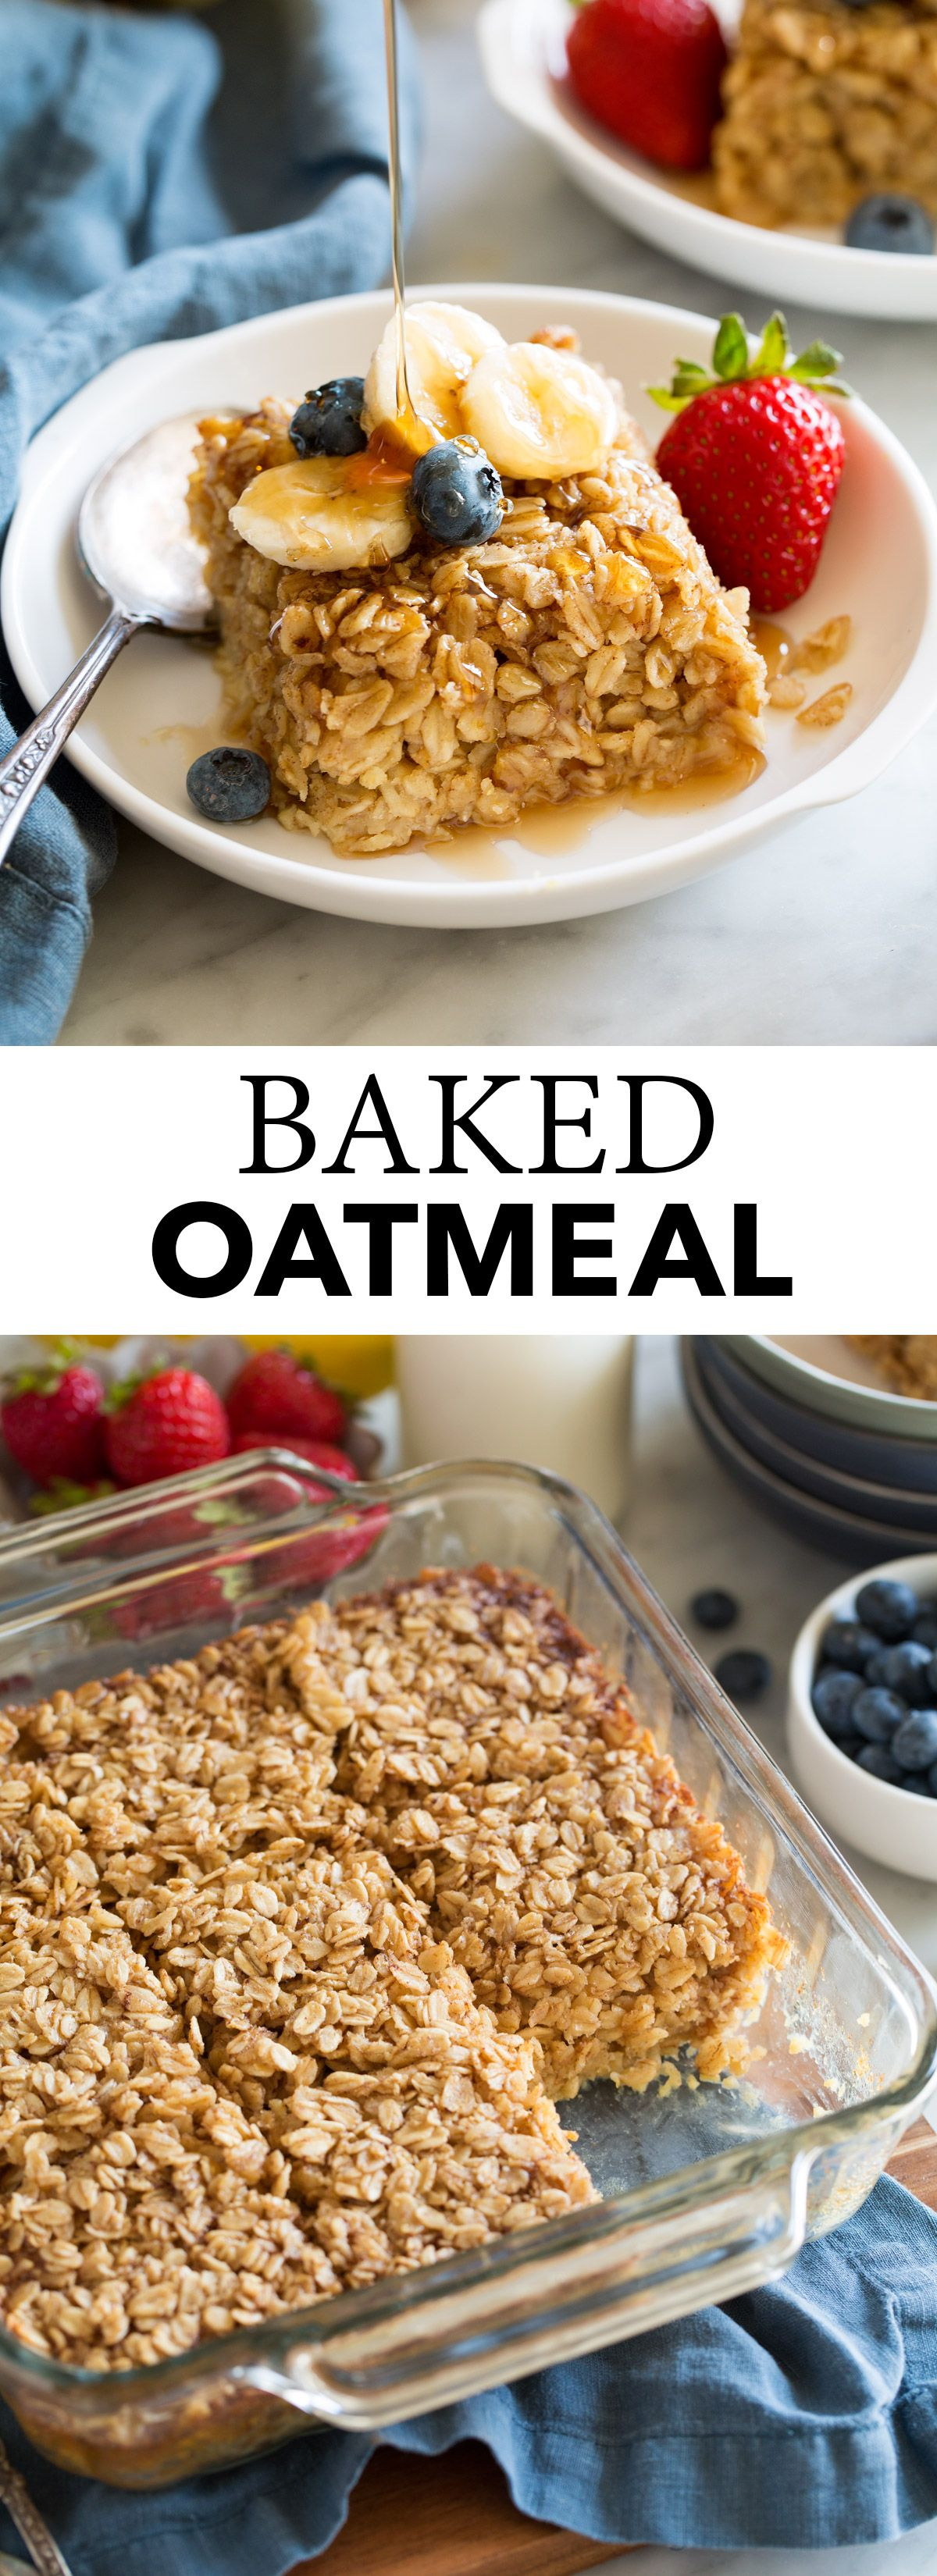 Photo of Baked Oatmeal Recipe – Cooking Classy